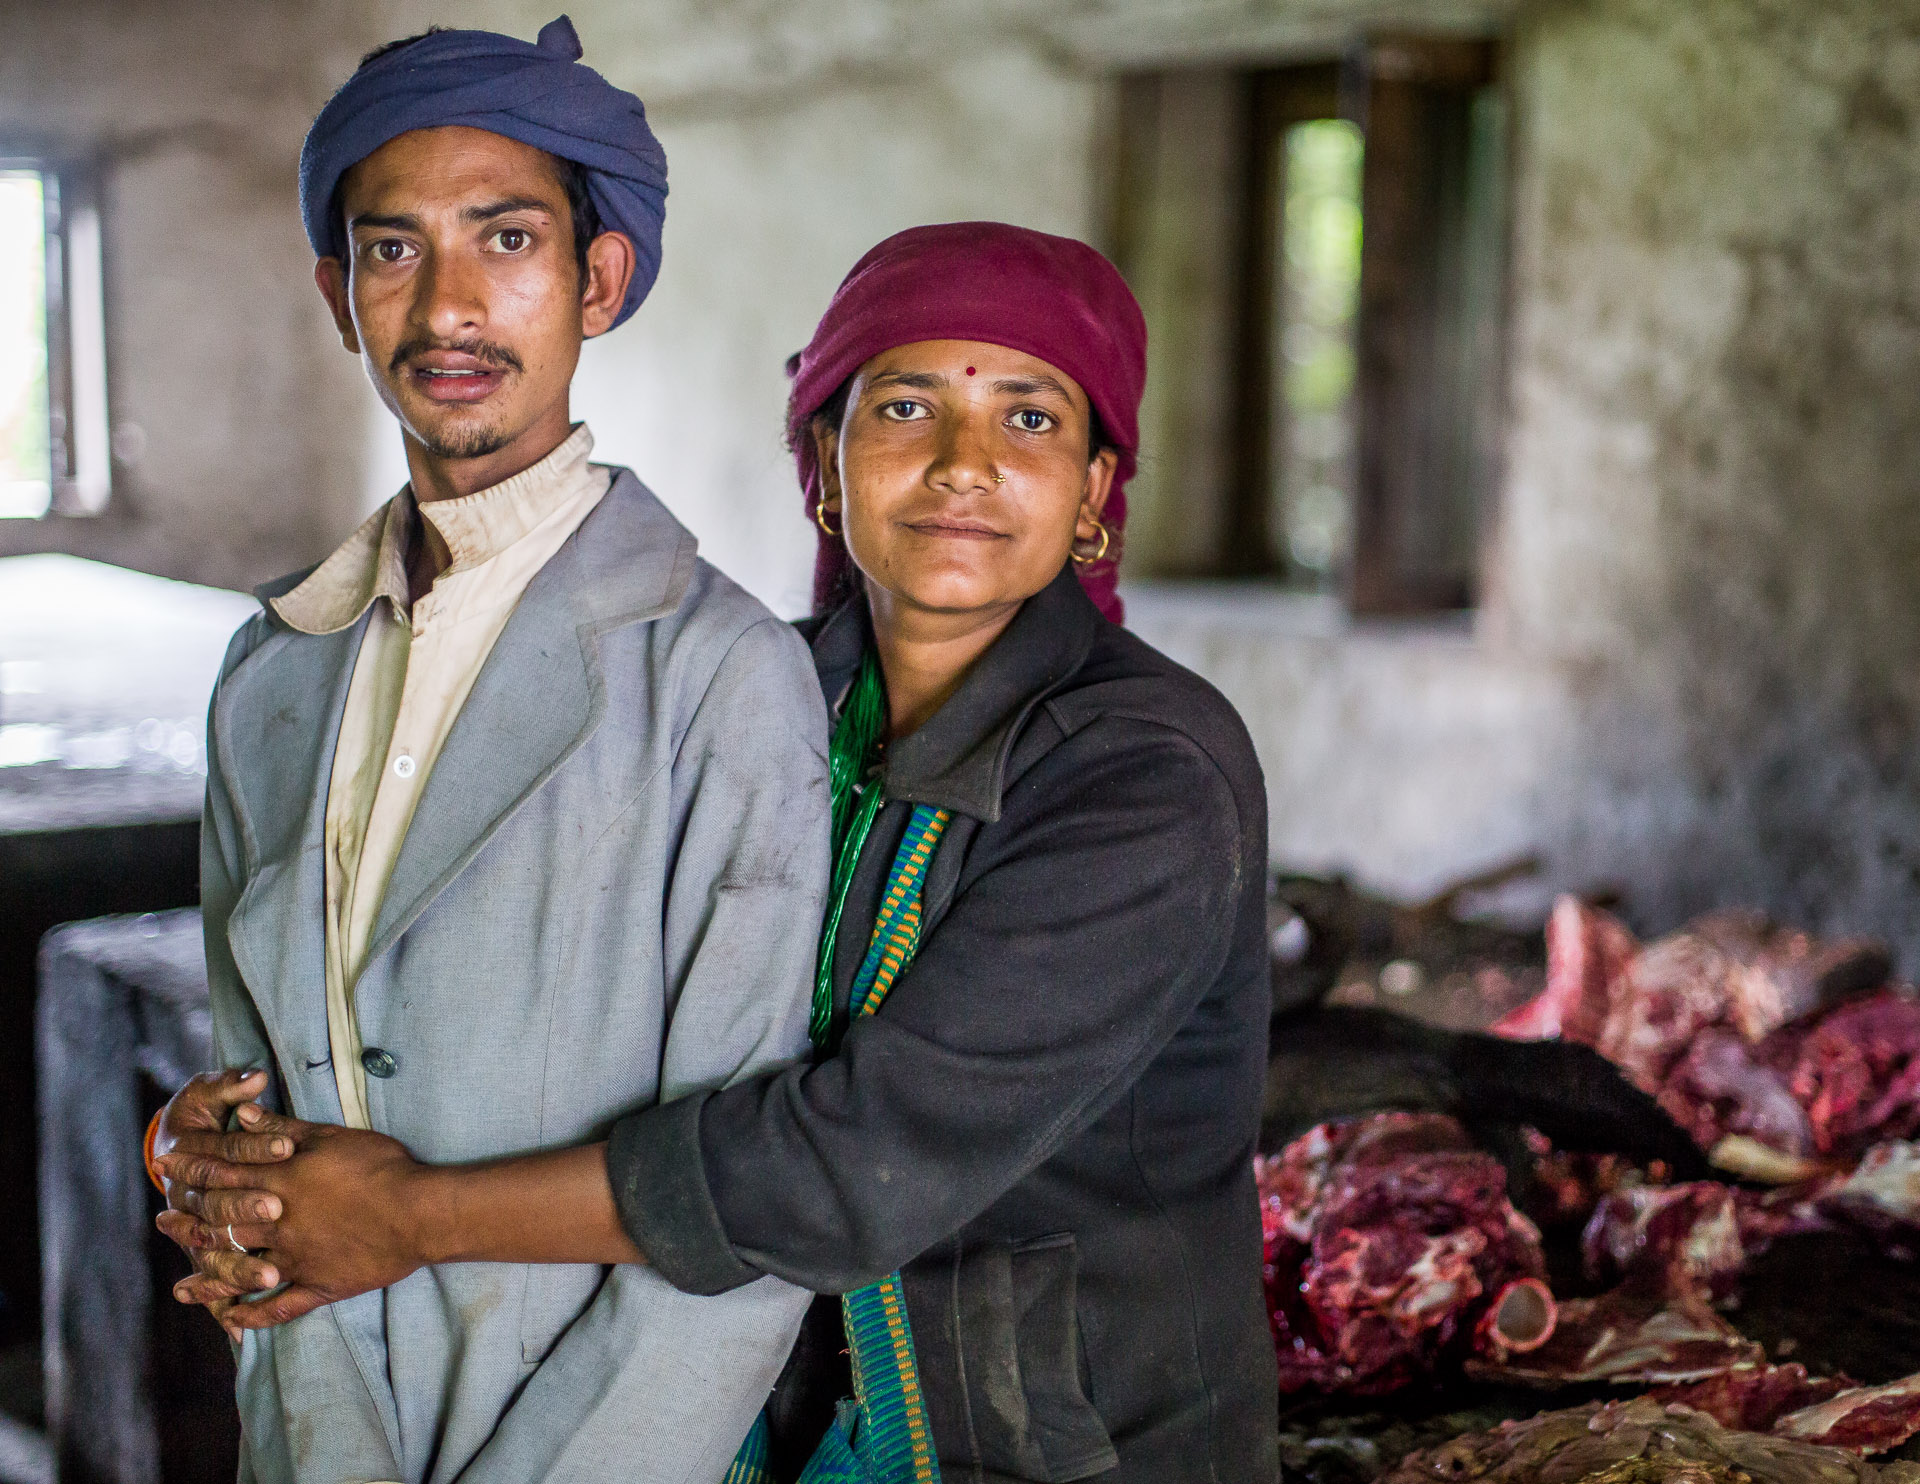 This husband and wife work every Thursday, butchering animals that are sold in the market.